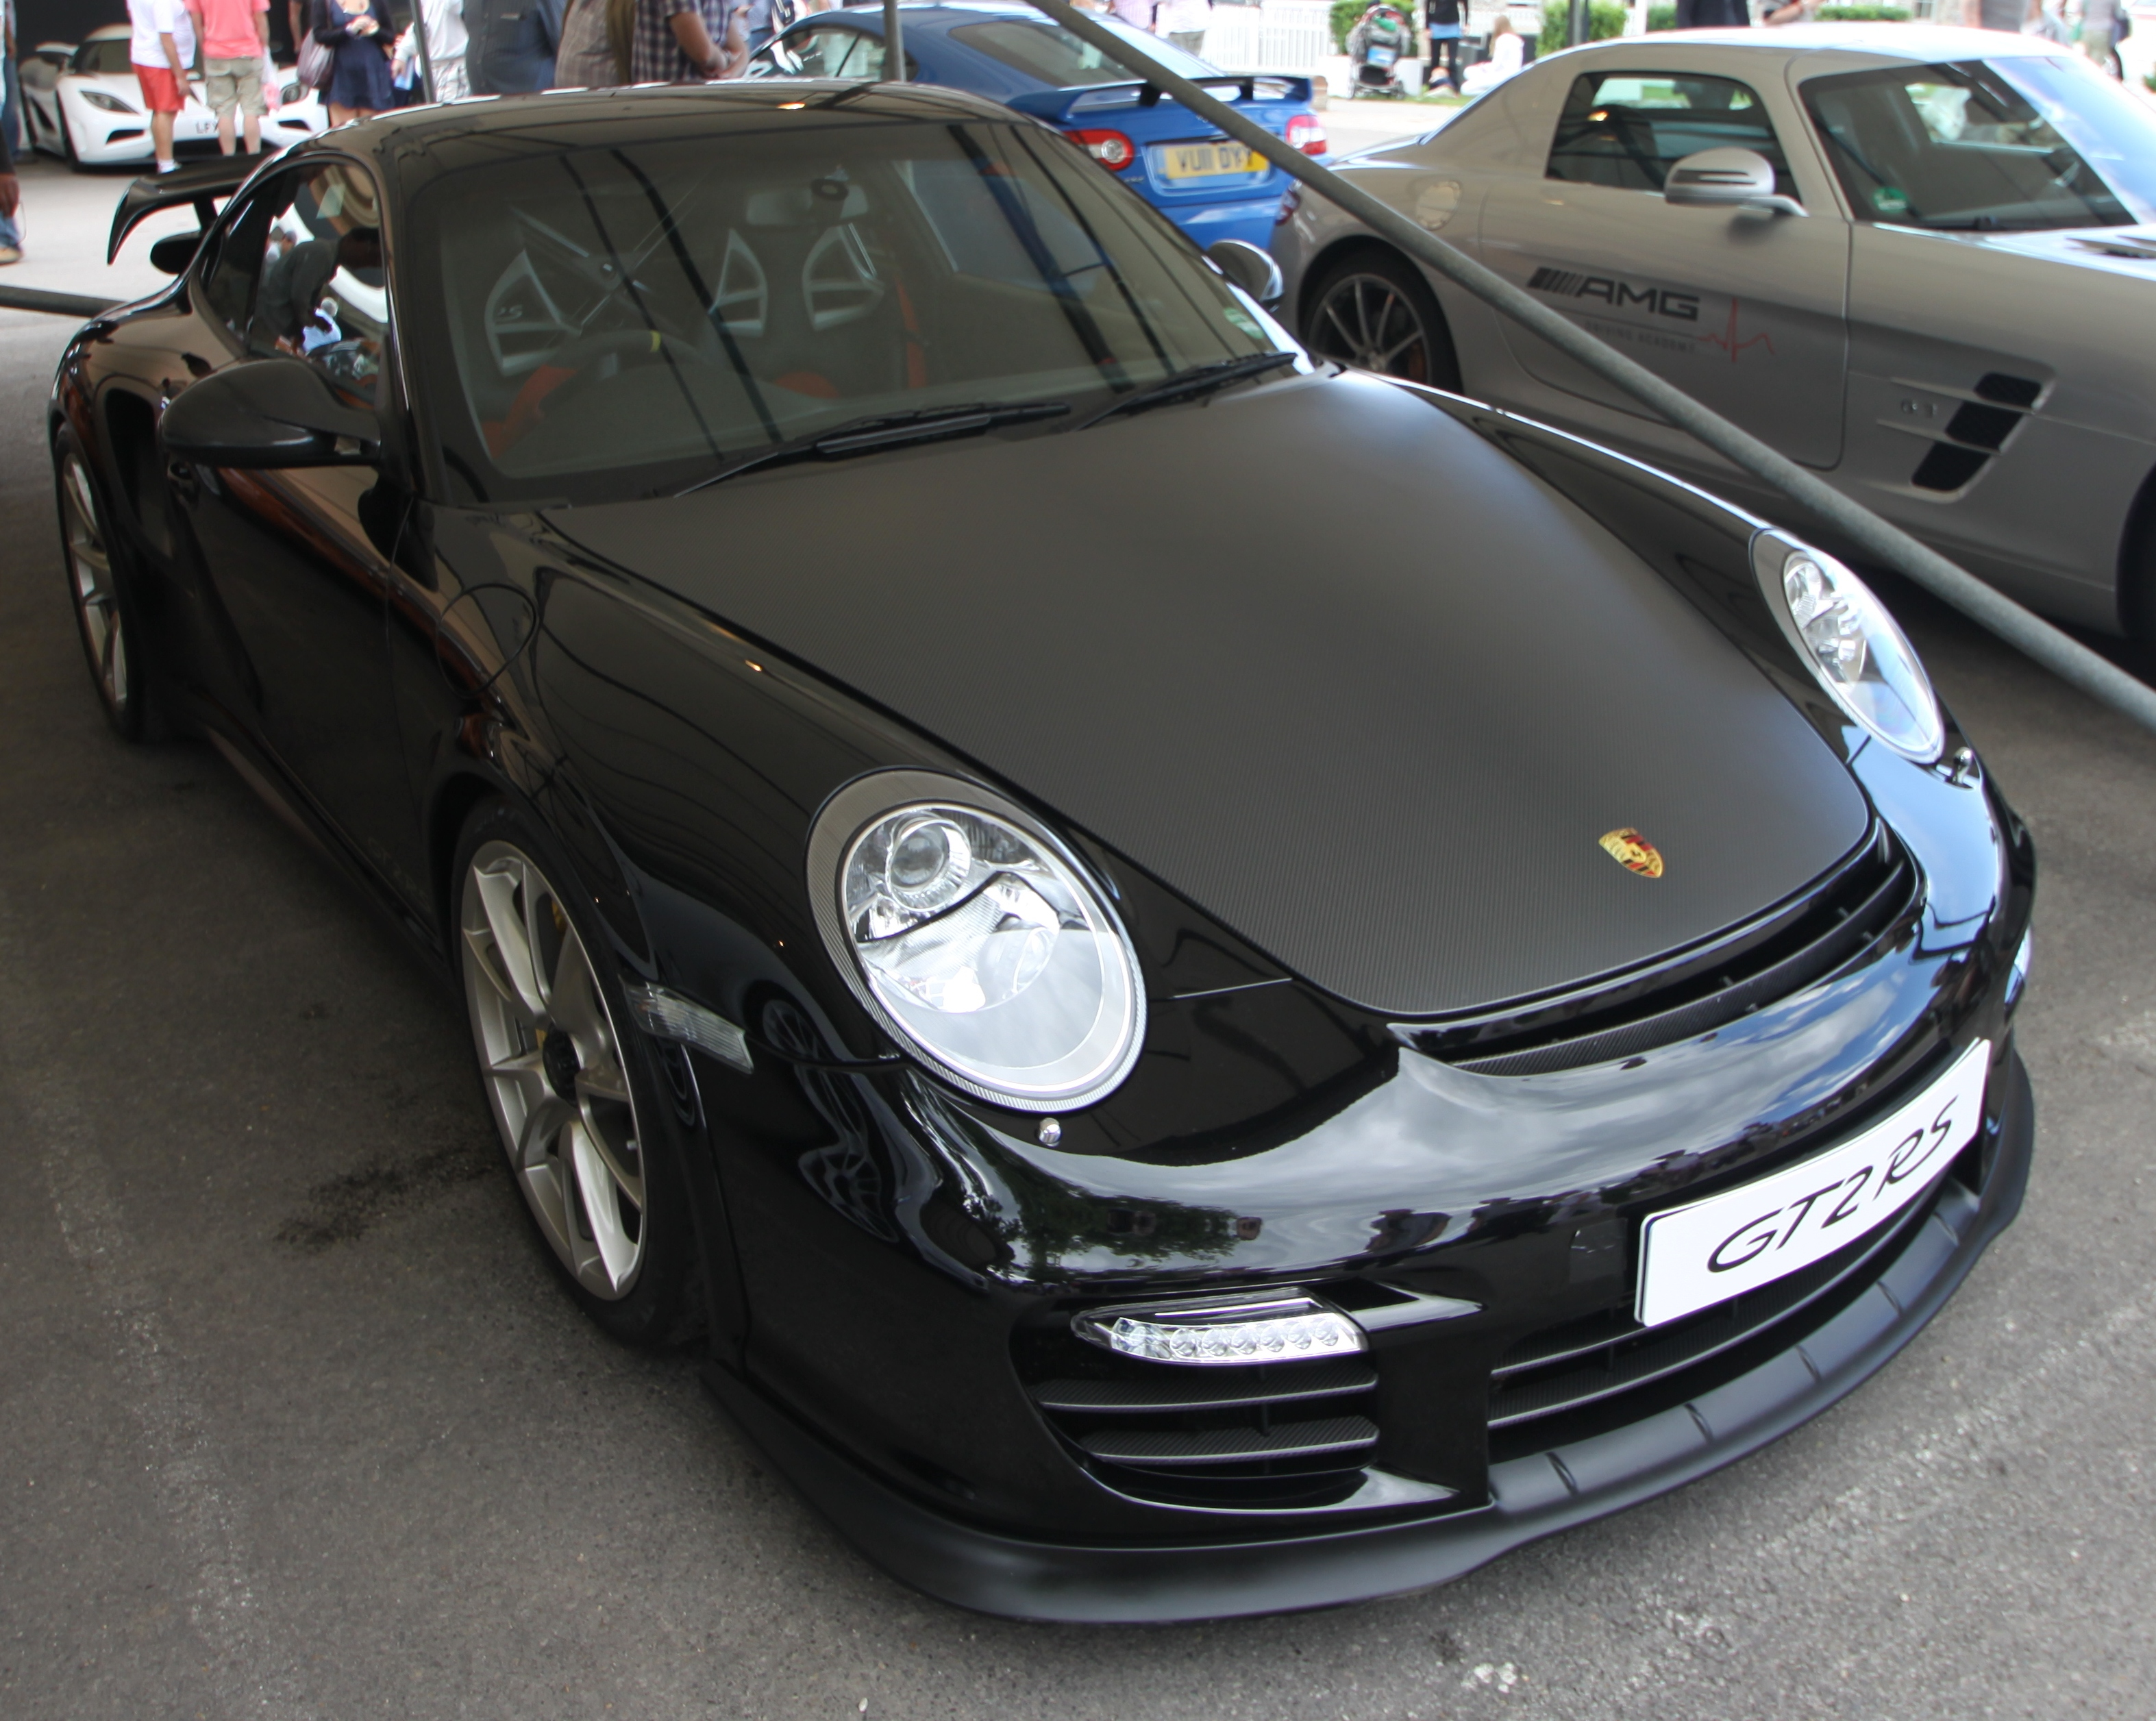 File Black 997 Gt2 Rs Rhd Goodwood Fos 2011 Jpg